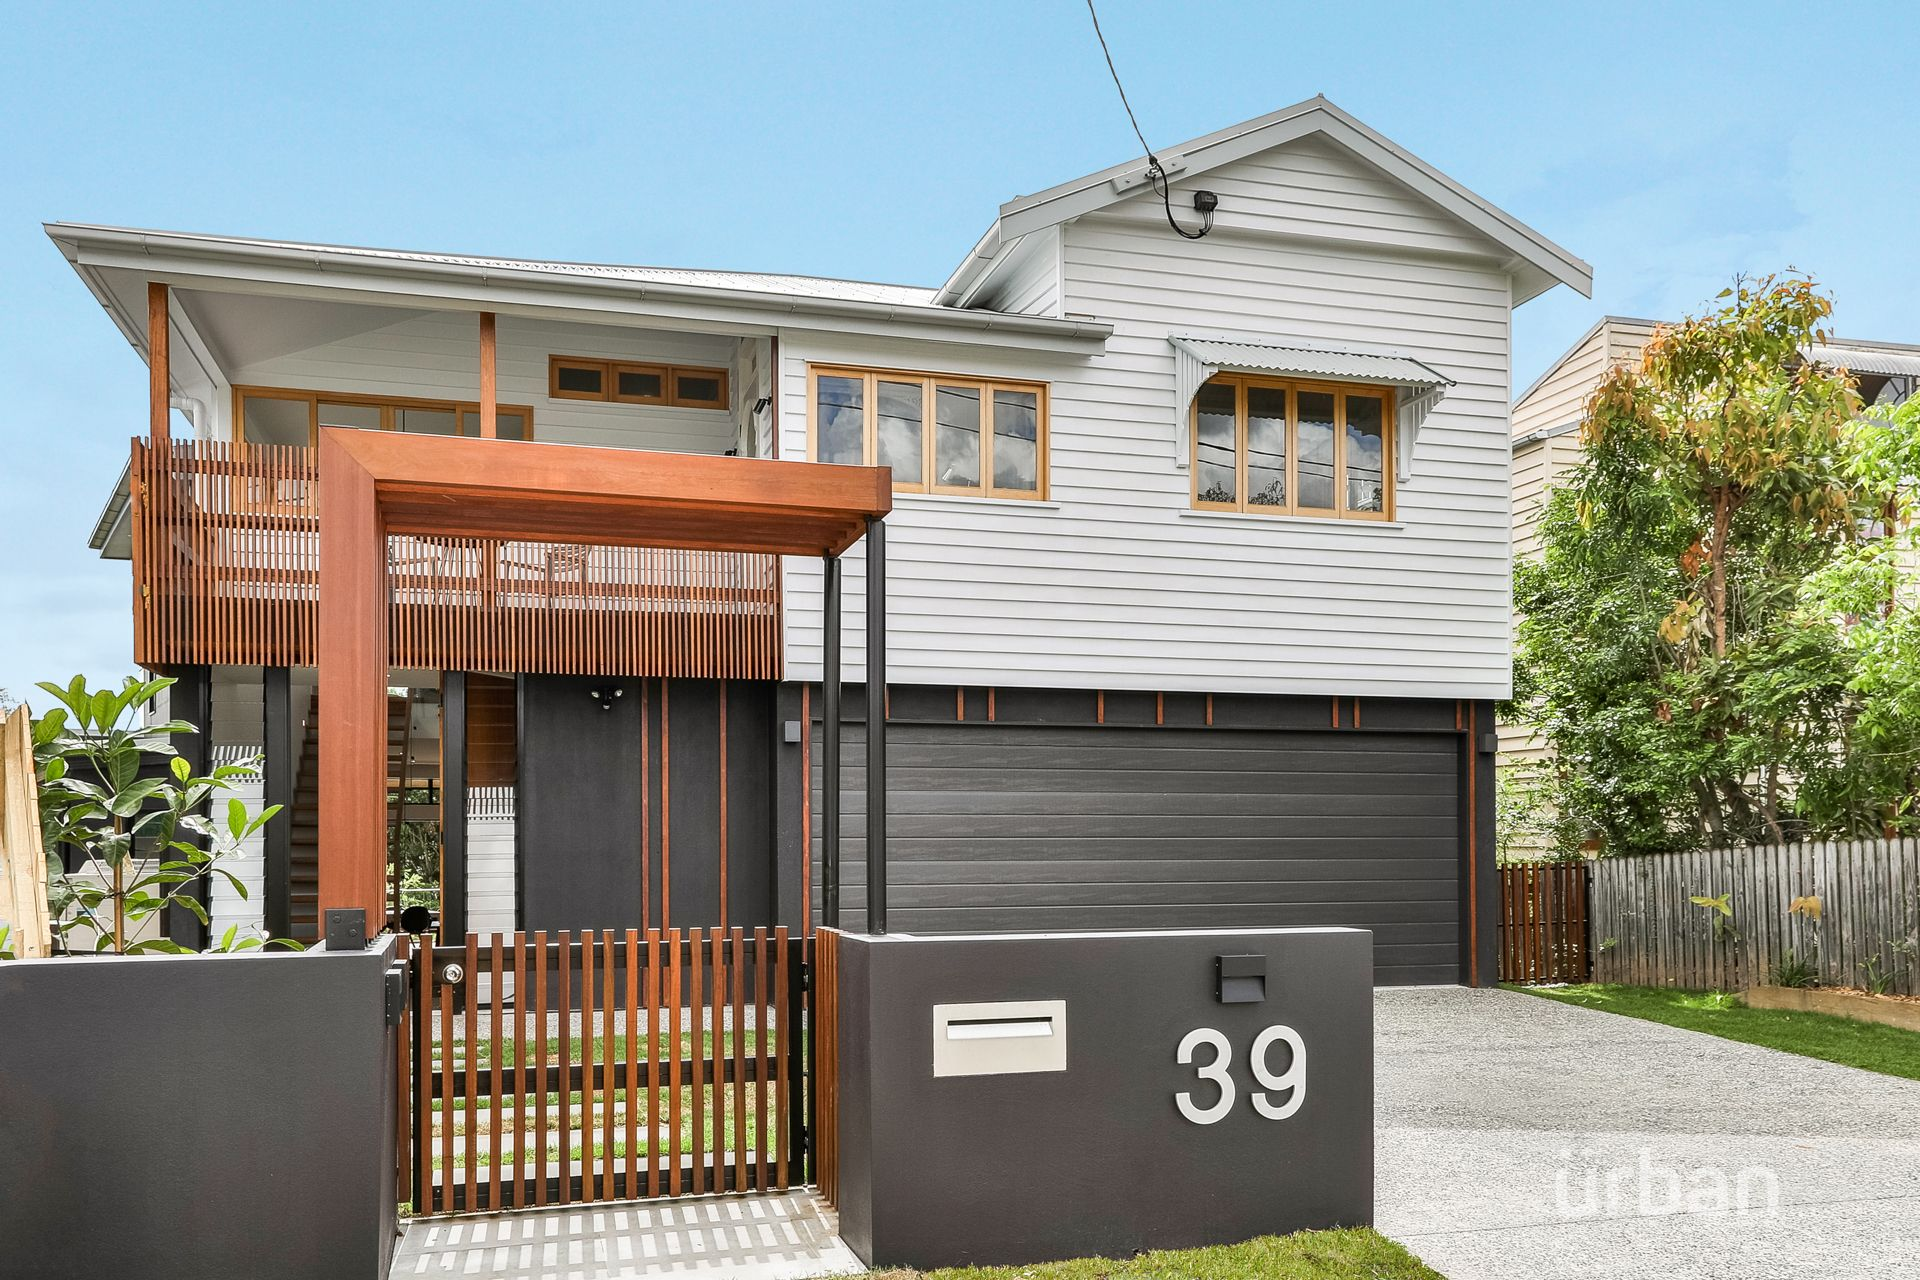 39 Accession Street Bardon 4065